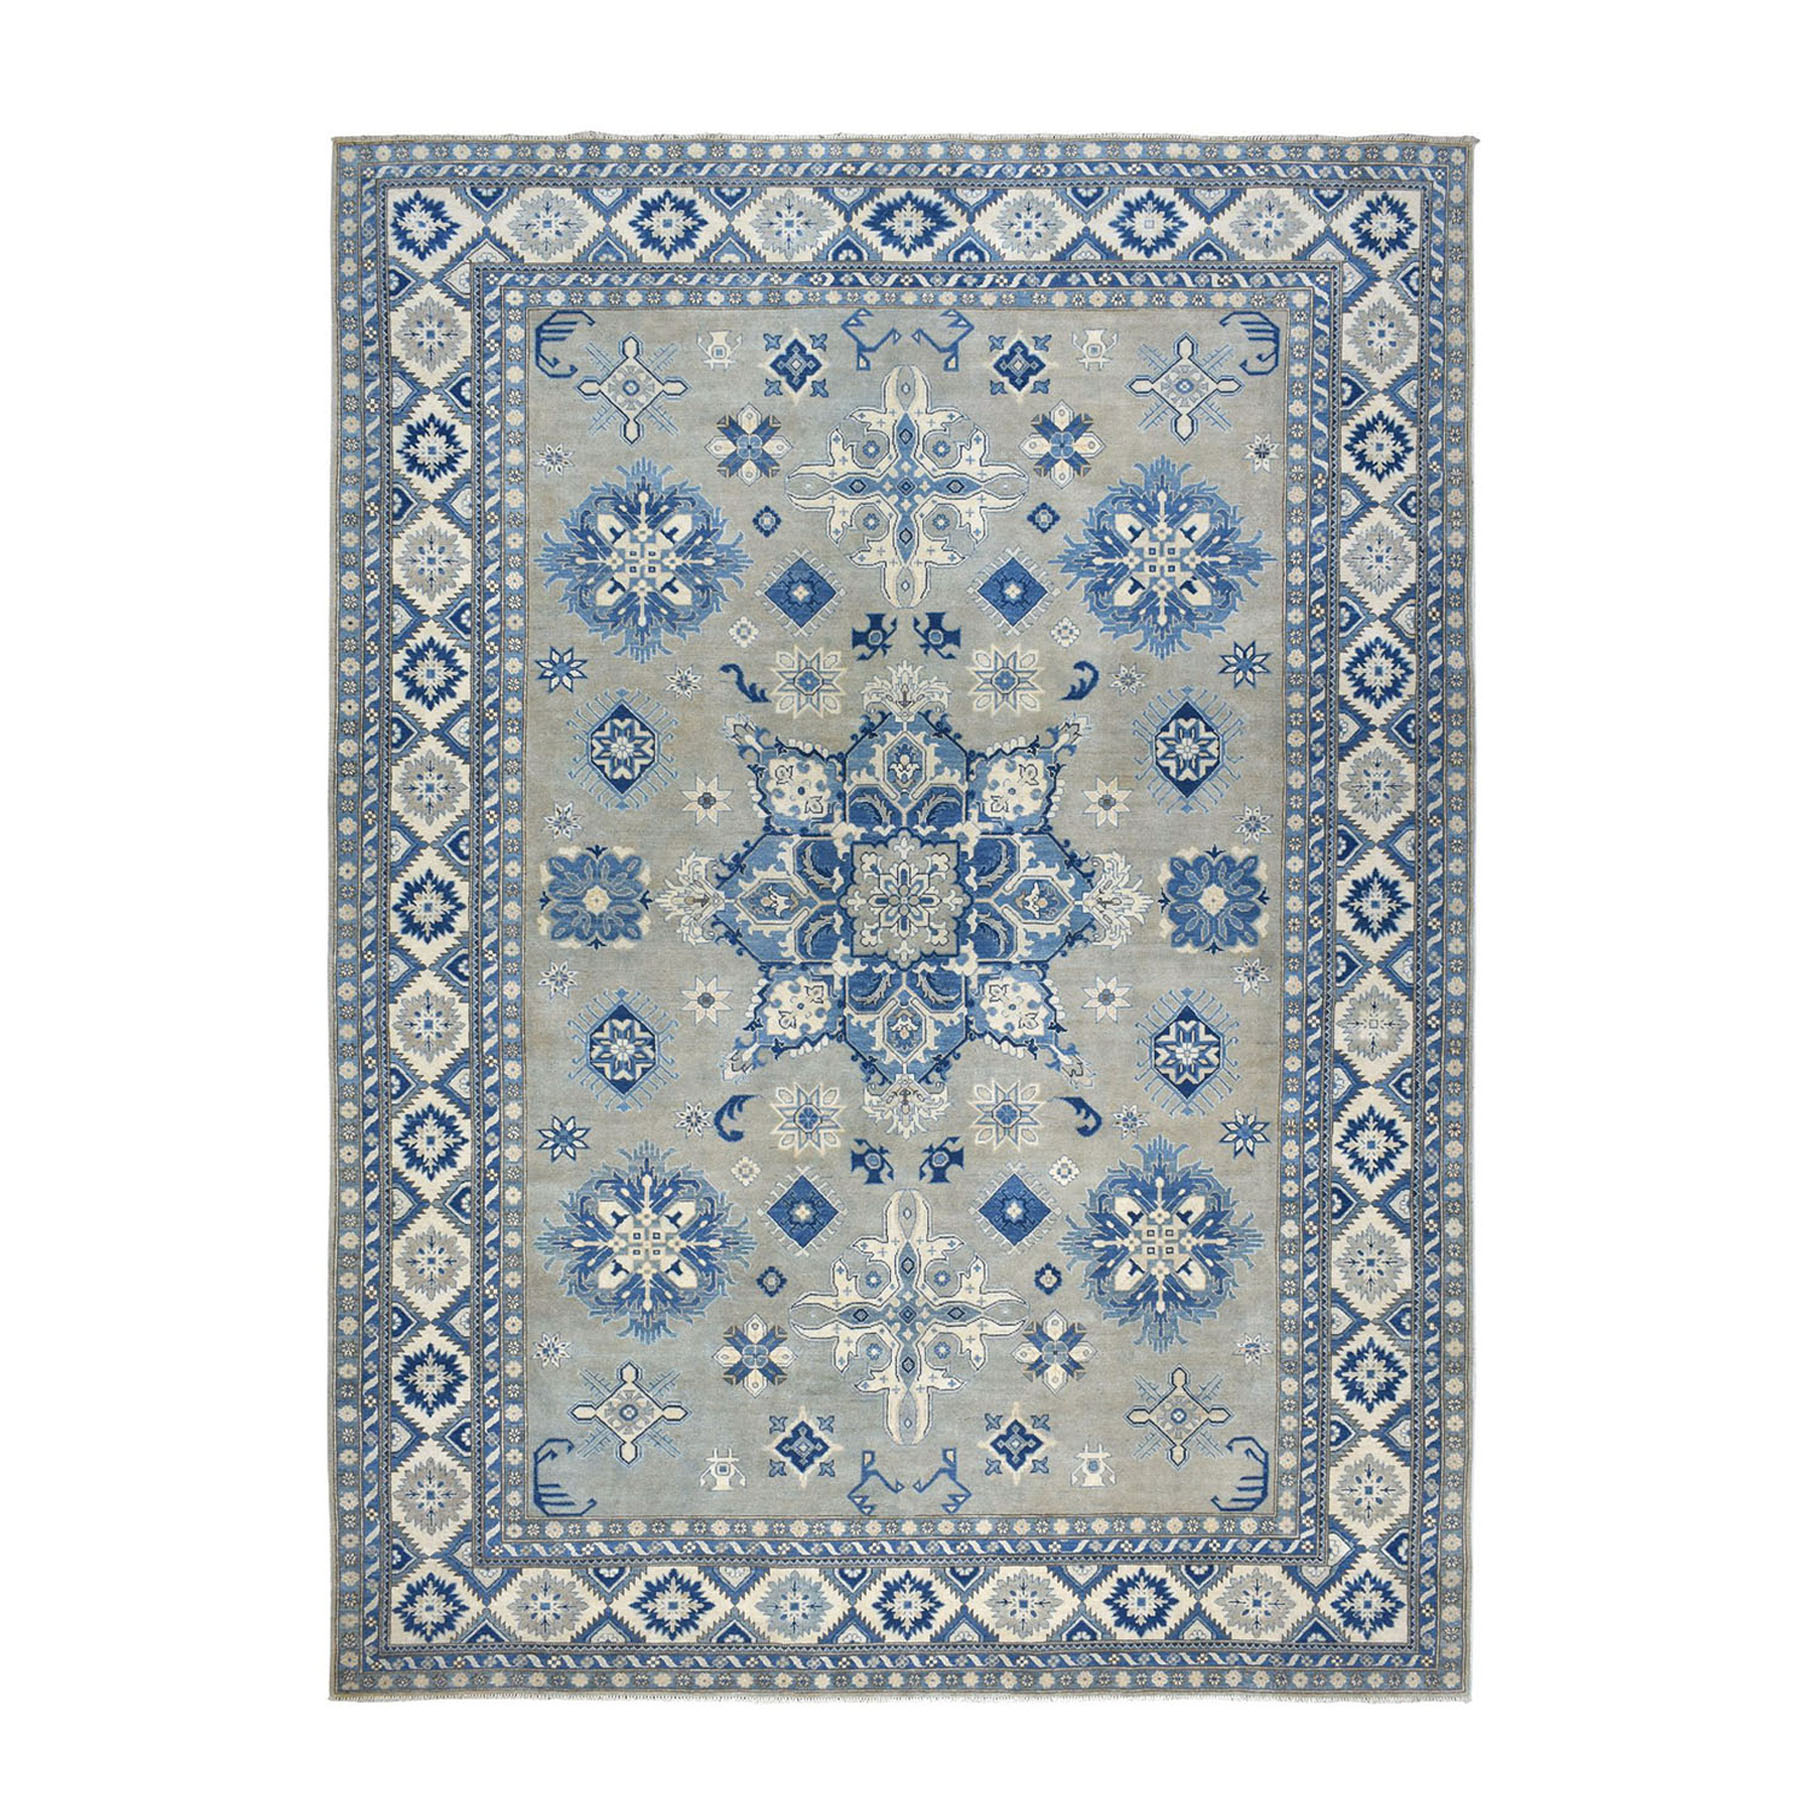 "10'X13'9"" Gray Vintage Look Kazak Geometric Design Pure Wool Hand-Knotted Oriental Rug moae0ee7"